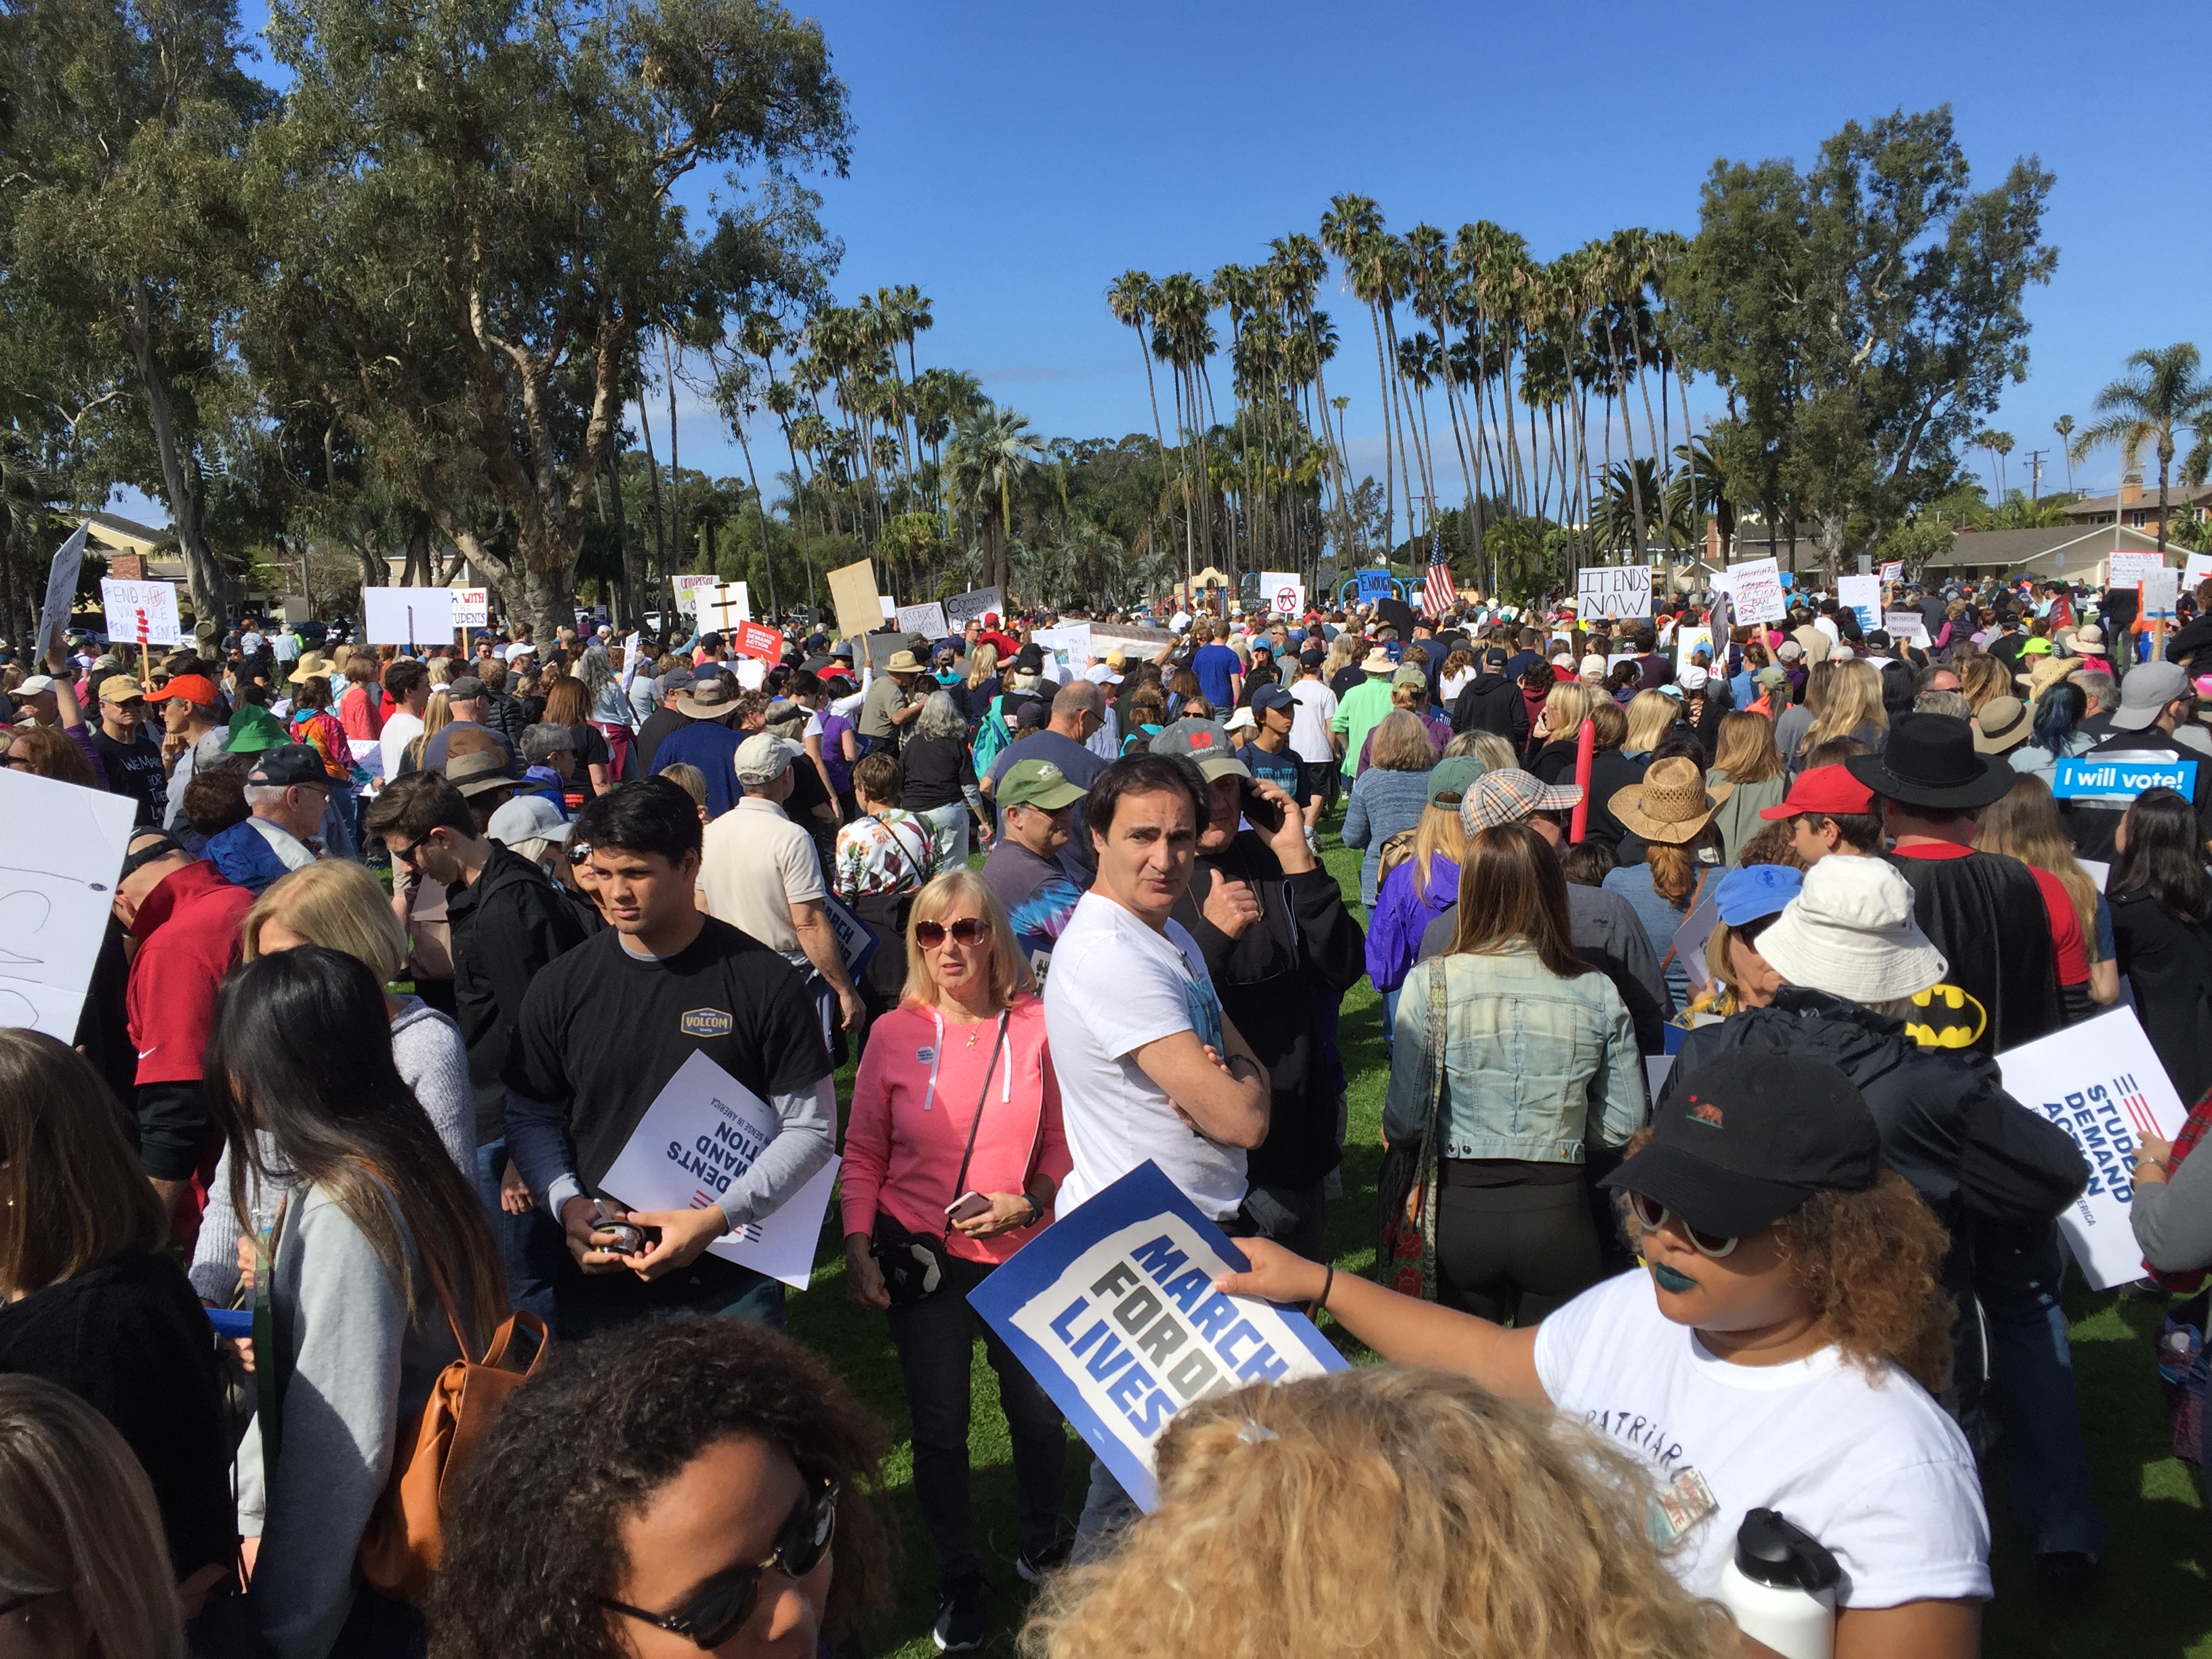 2018-3-24 AM March for Our Lives, Huntington Beach 11 - Park Start